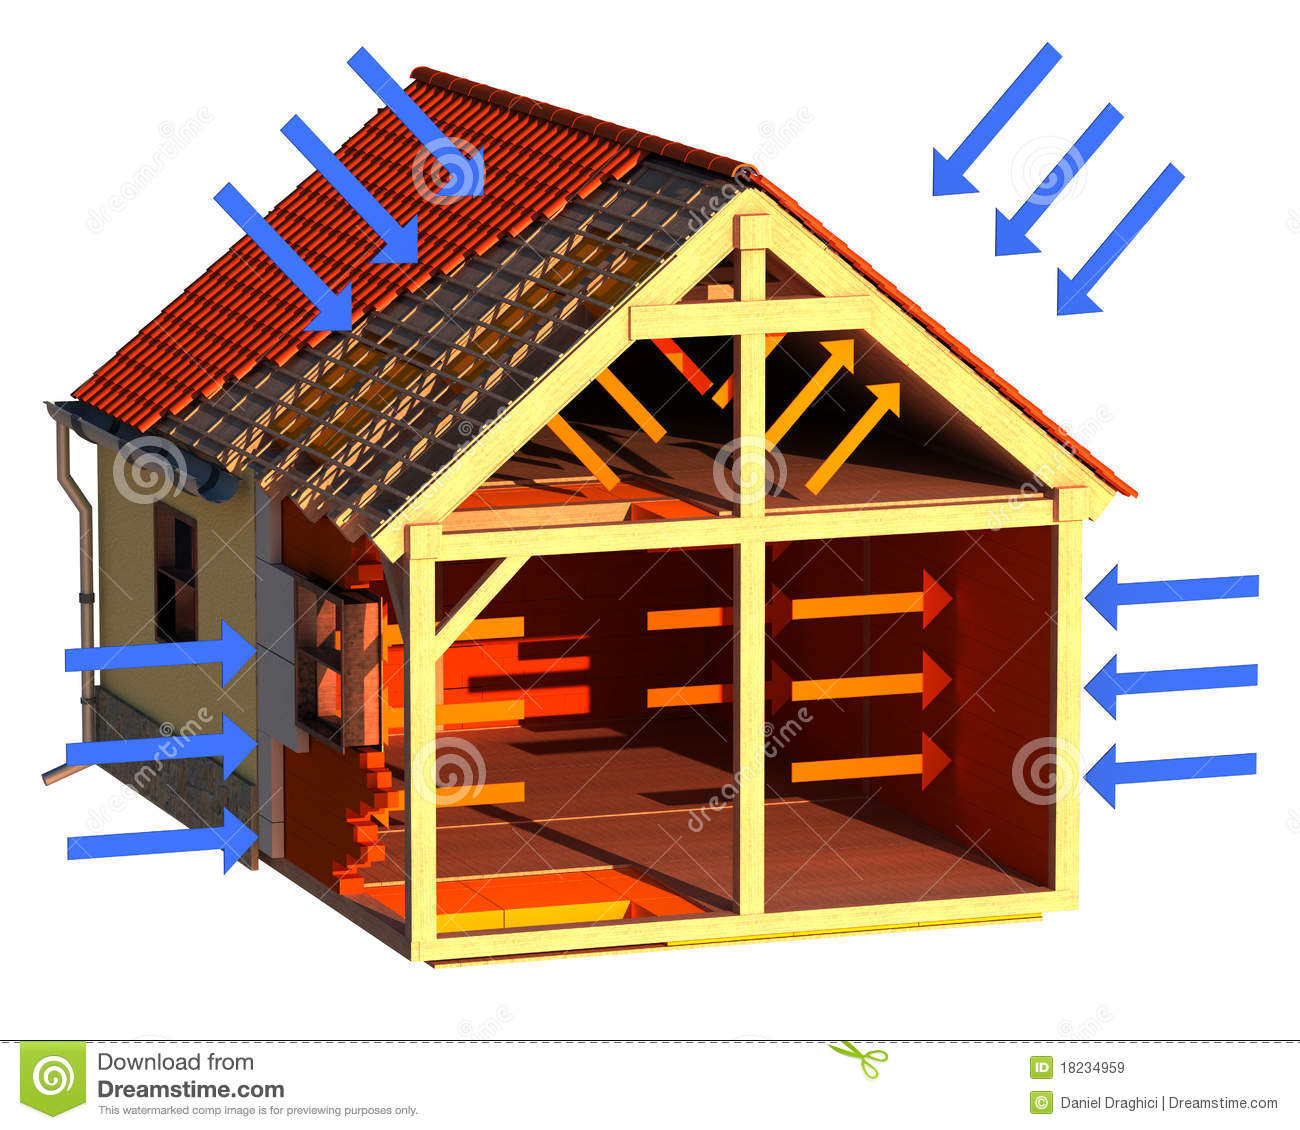 ... arrows showing heat loss and thermic transfer in an insulated house